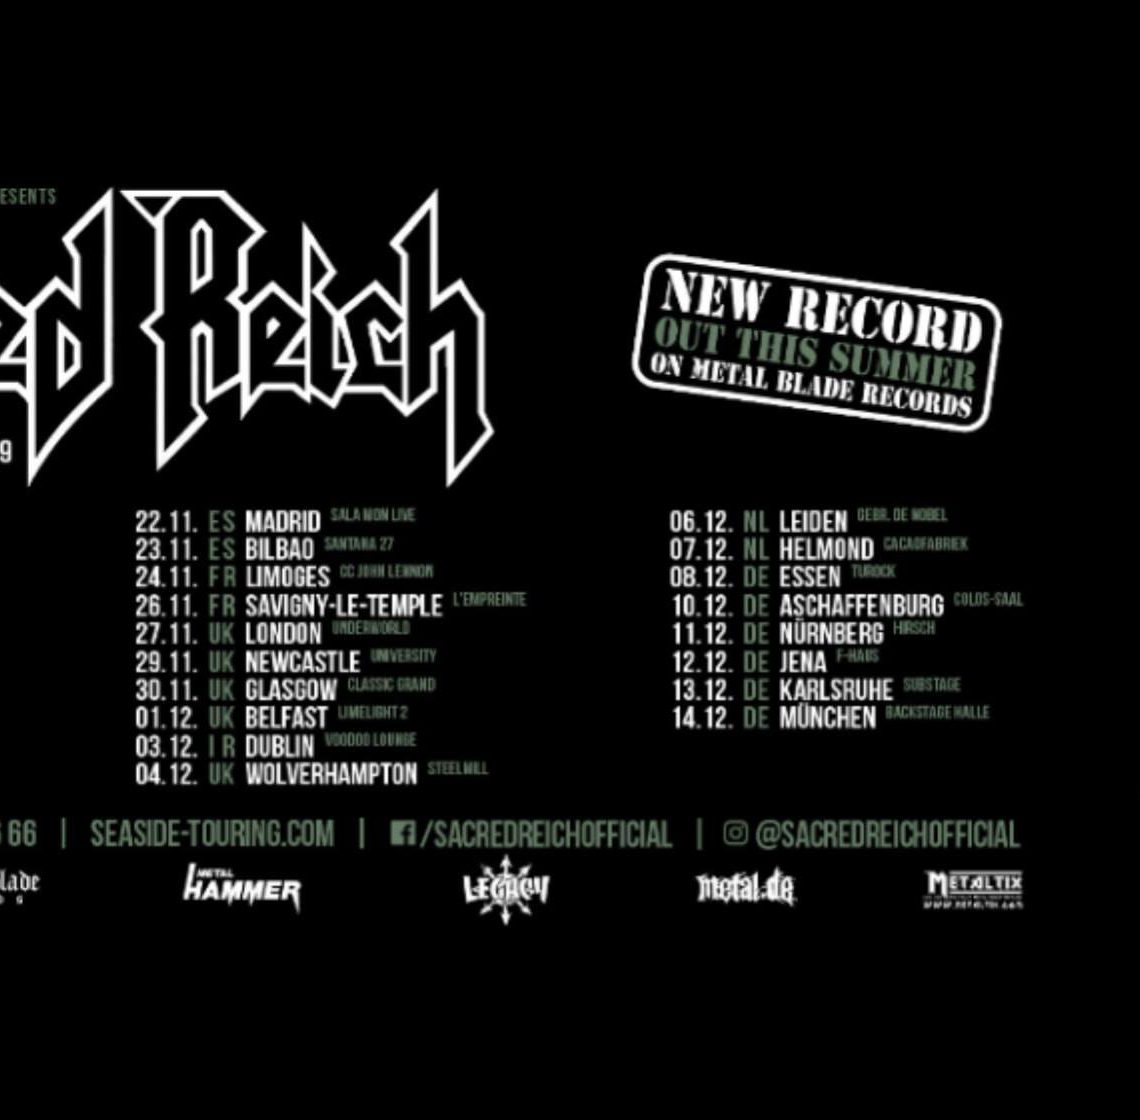 Sacred Reich announce Tour and New Album for 2019